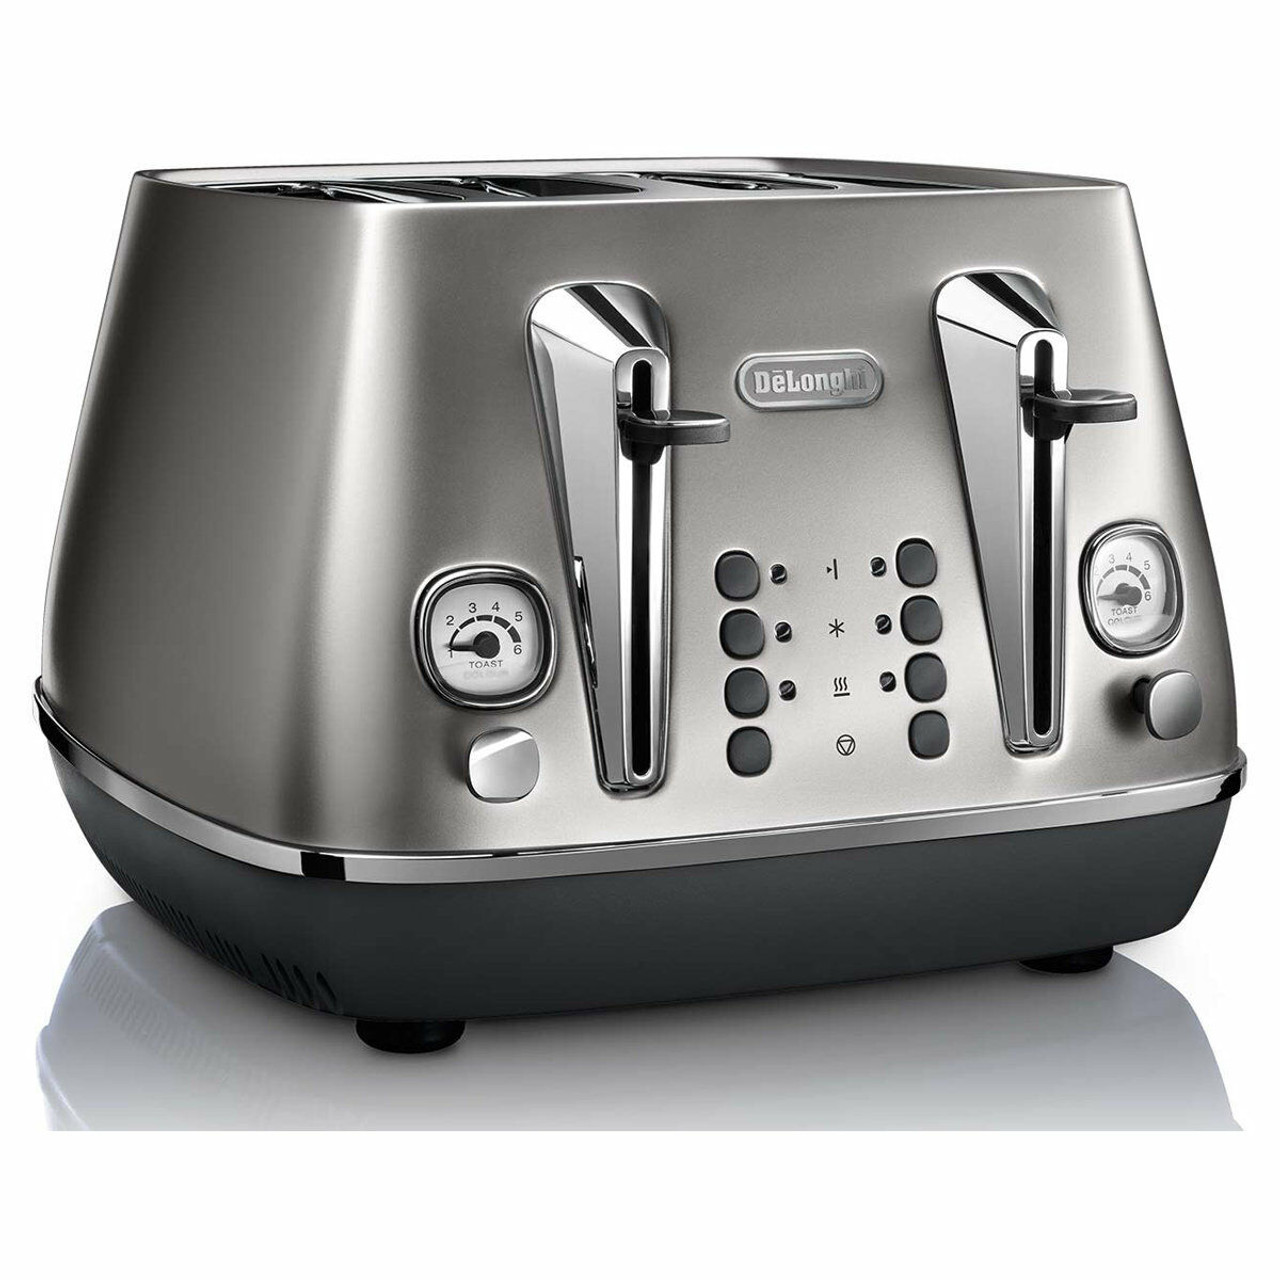 DeLonghi CTI4003S Distinta Flair 1800 Watt 4 Slice Toaster - Finesse Silver